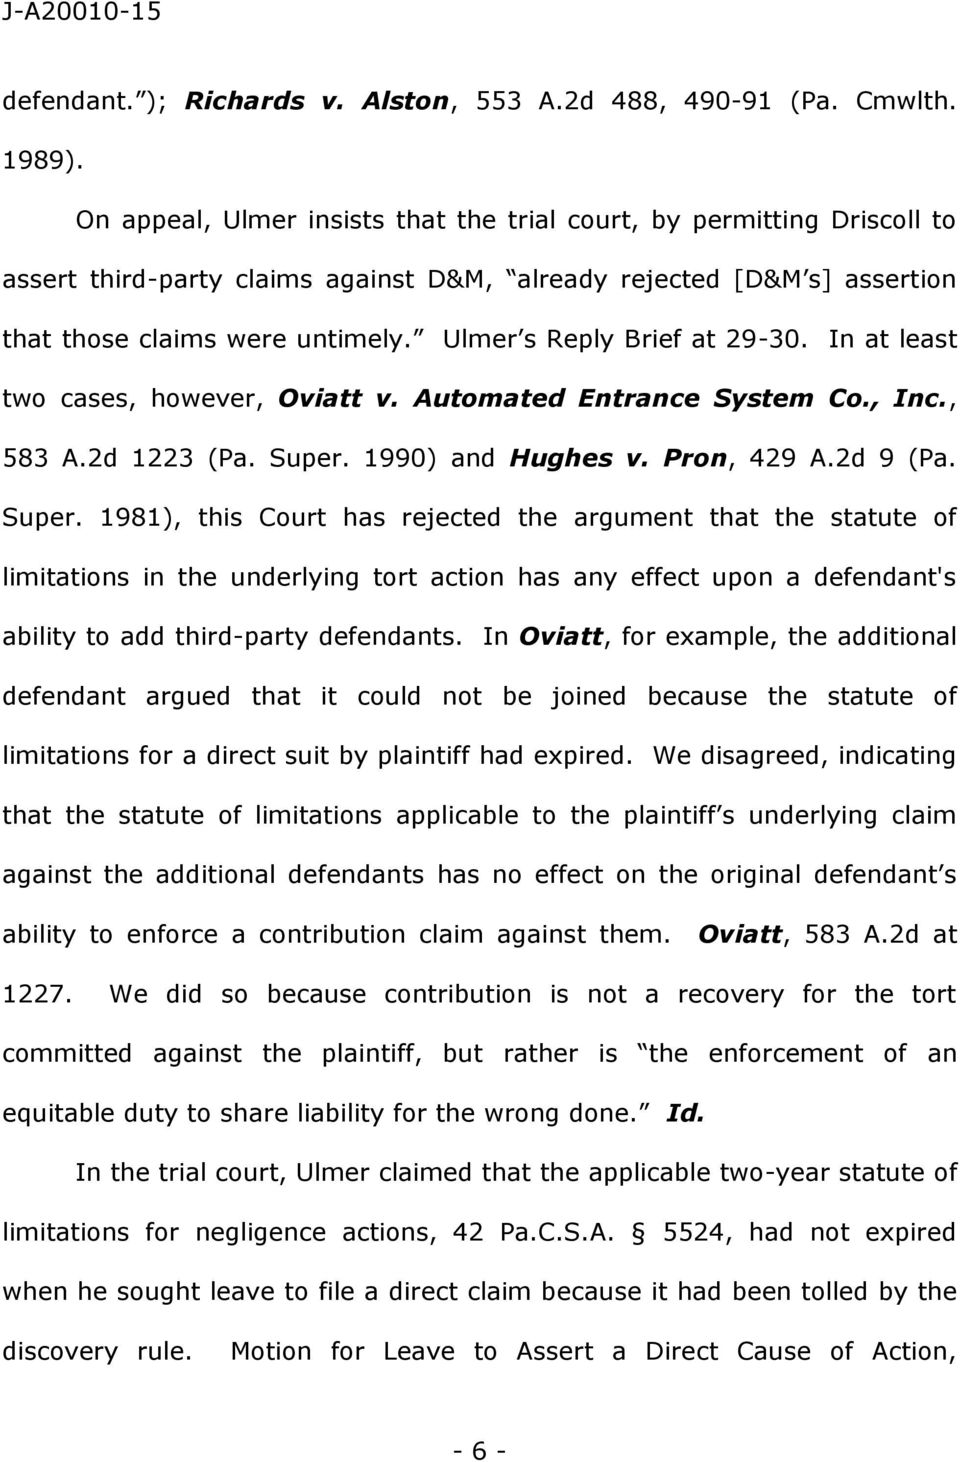 Ulmer s Reply Brief at 29-30. In at least two cases, however, Oviatt v. Automated Entrance System Co., Inc., 583 A.2d 1223 (Pa. Super.